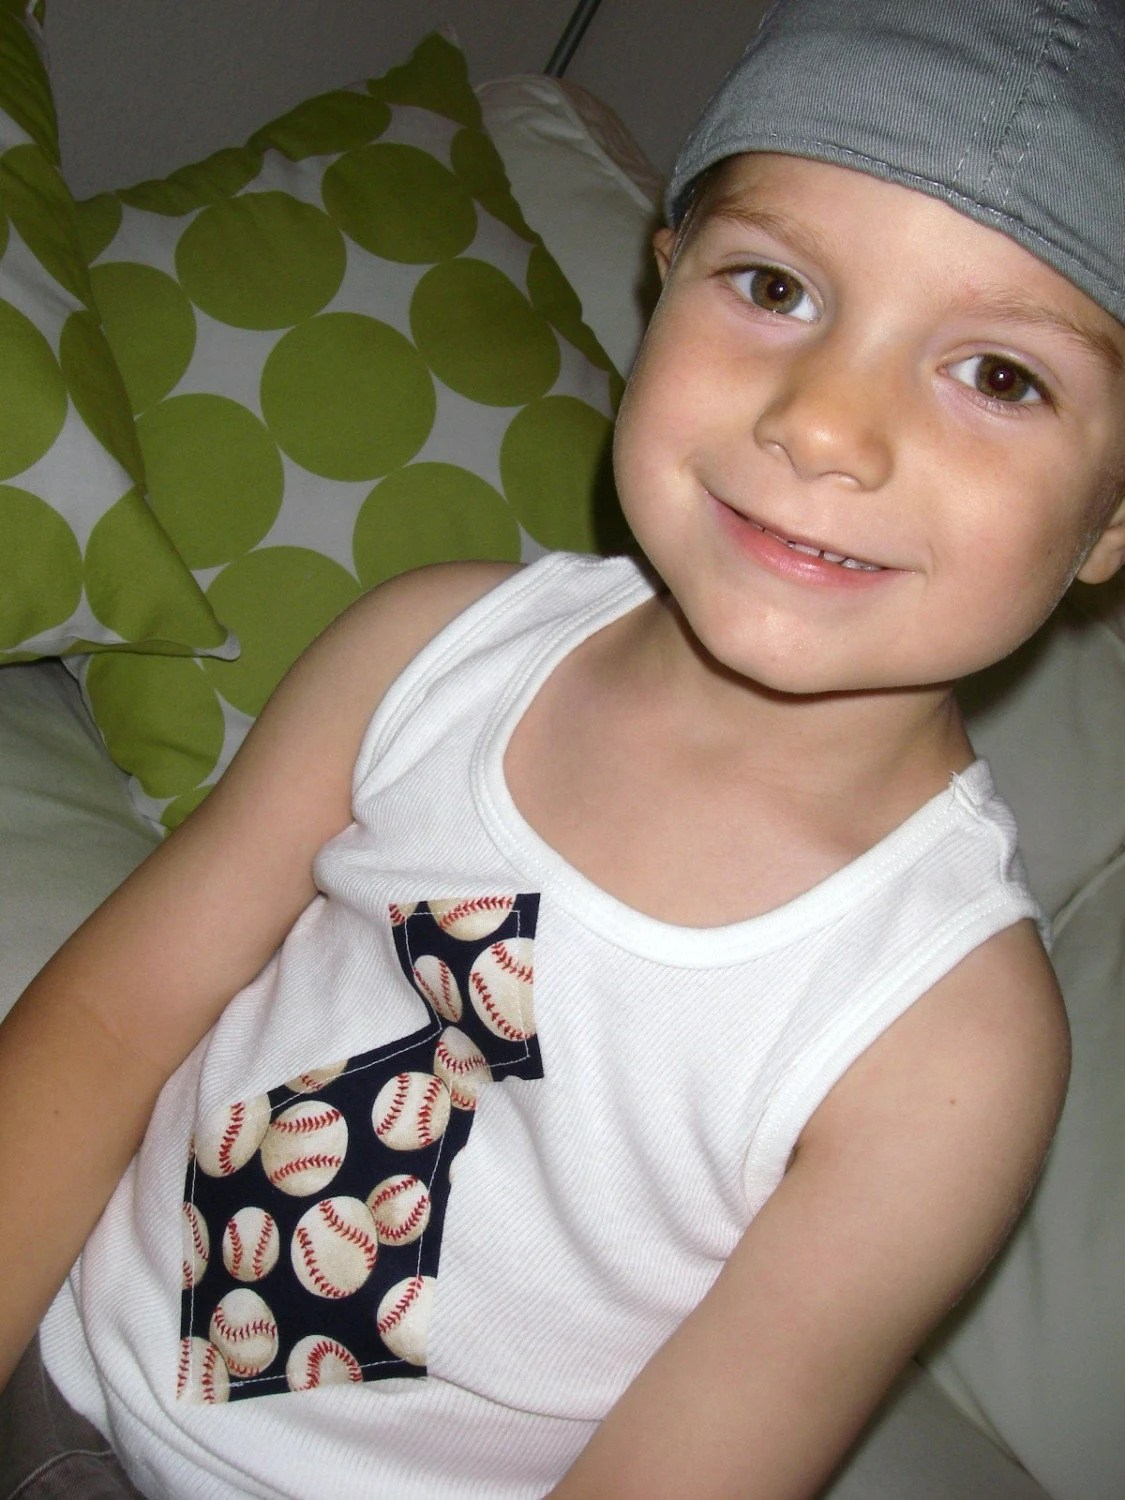 Boys aka lil dude blue baseball print tie tank or tee size 2/3T, 6-7, 6-8M boys